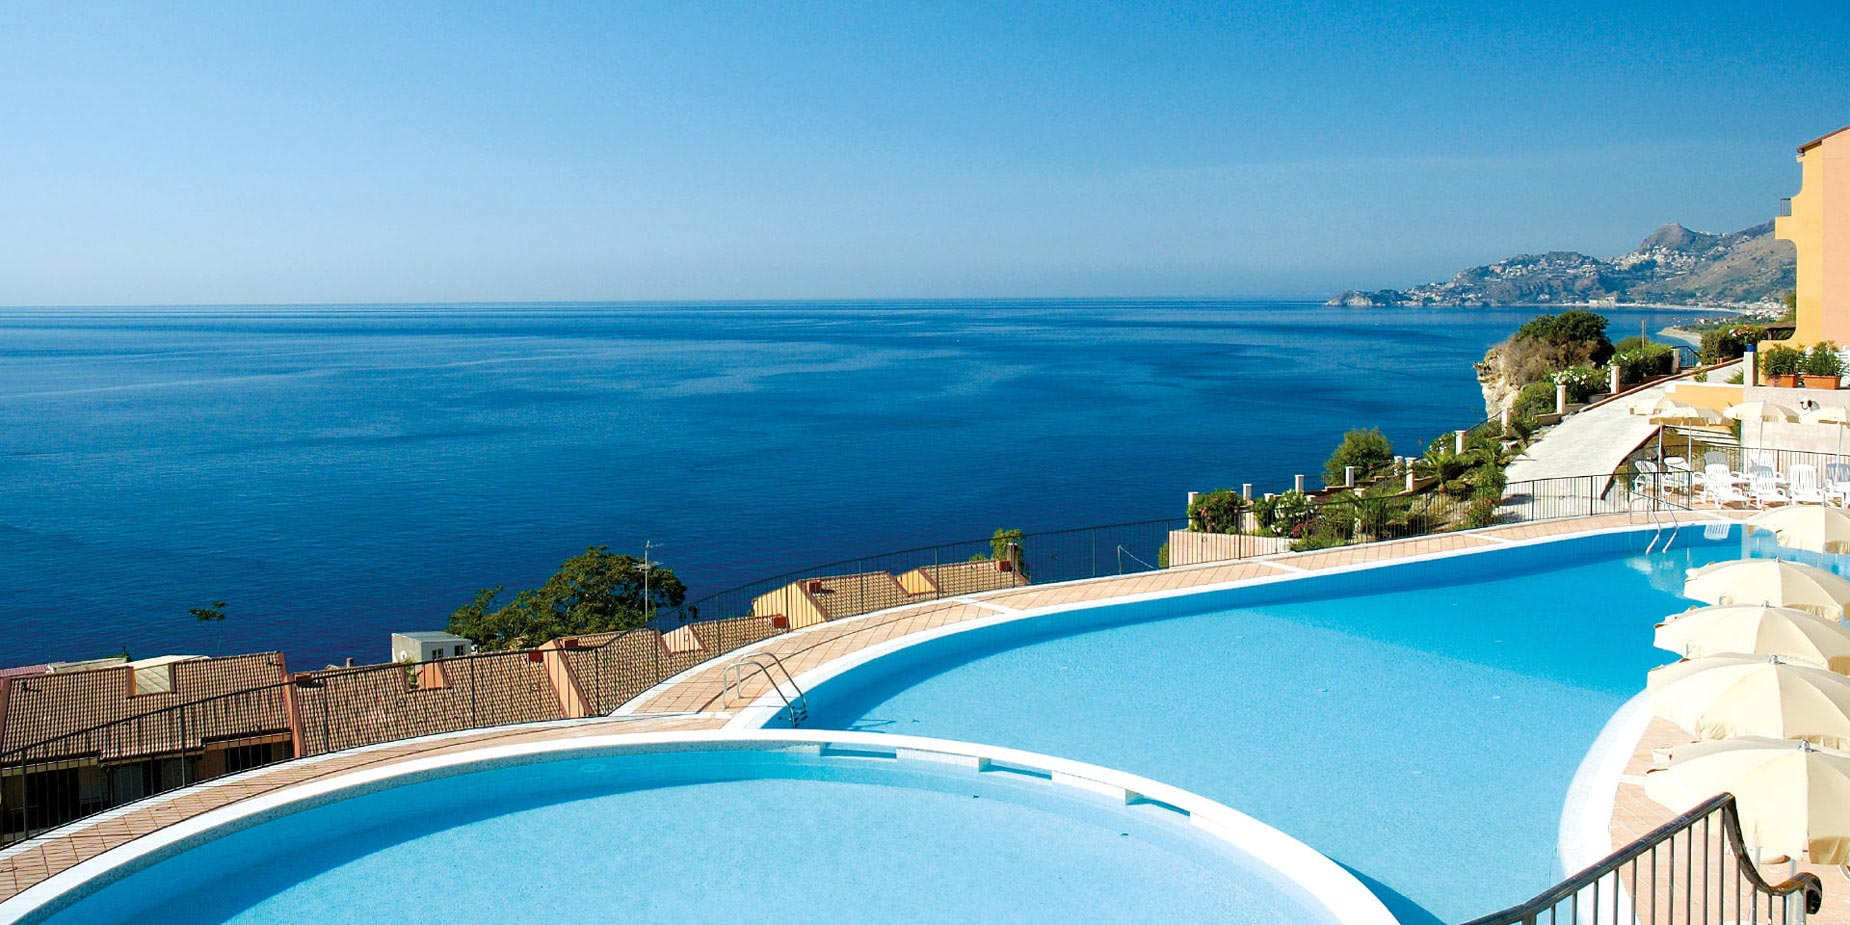 Capo dei Greci Taormina Coast - Hotel Resort & SPA